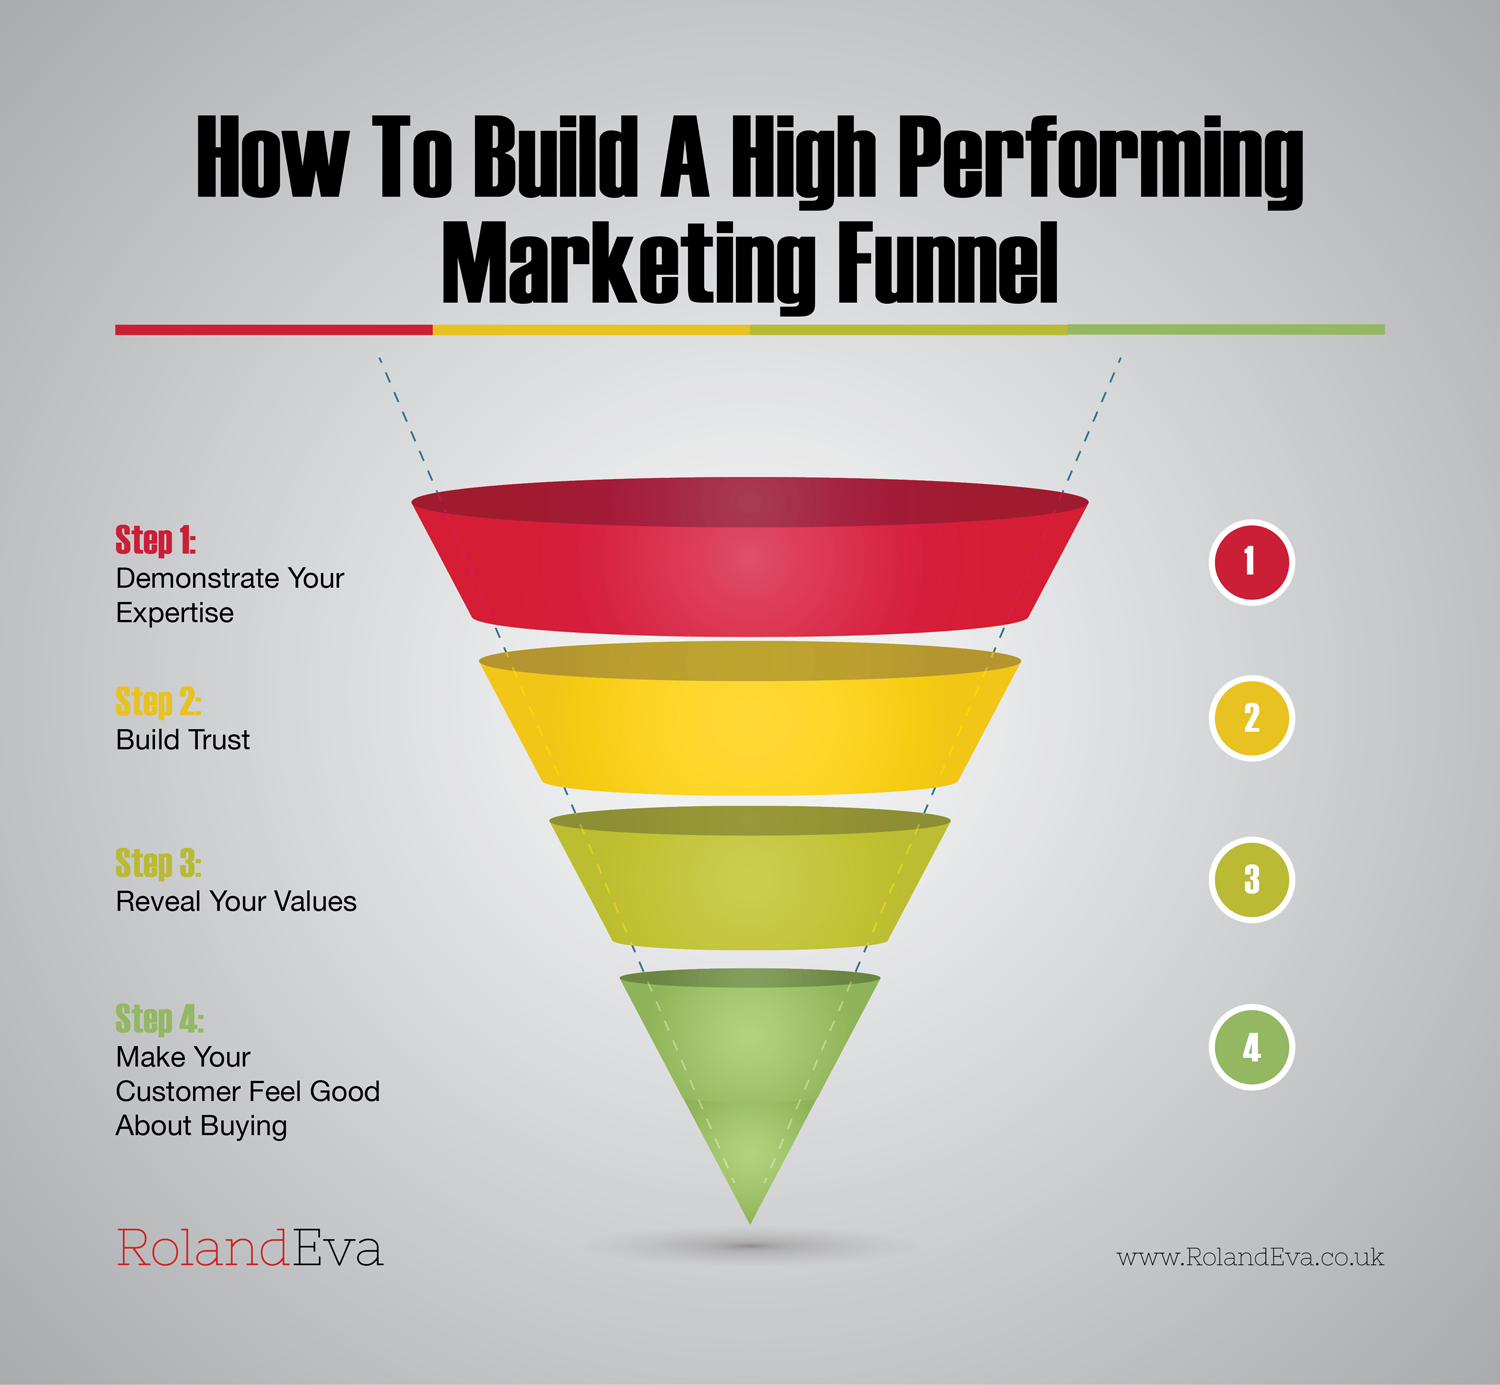 How To Build A High Performing Marketing Funnel